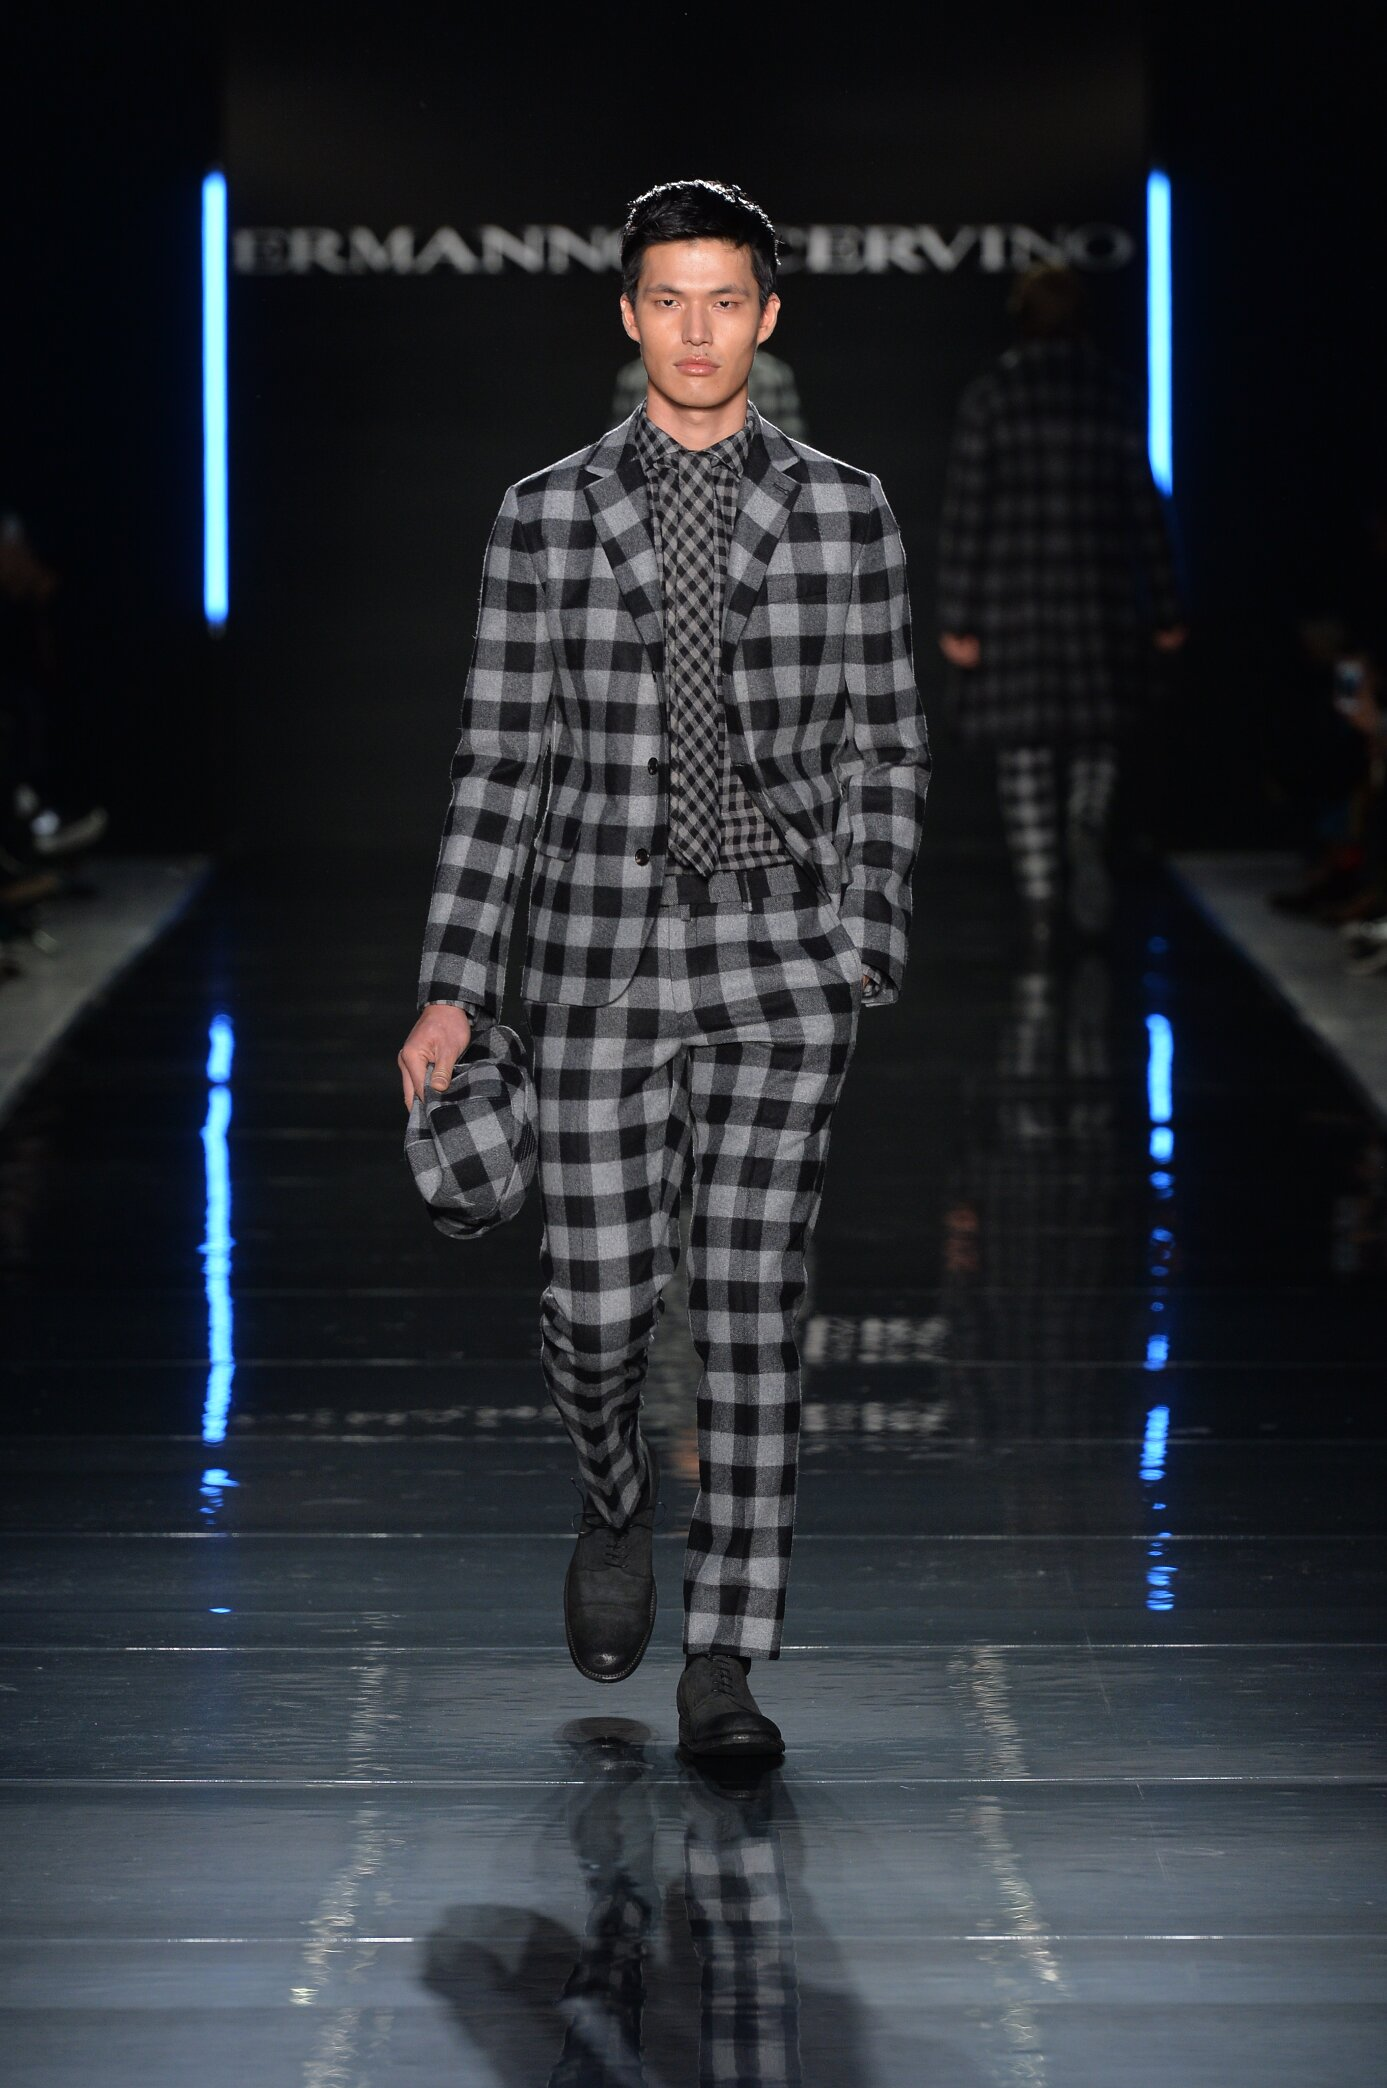 Winter 2014 Fashion Show Ermanno Scervino